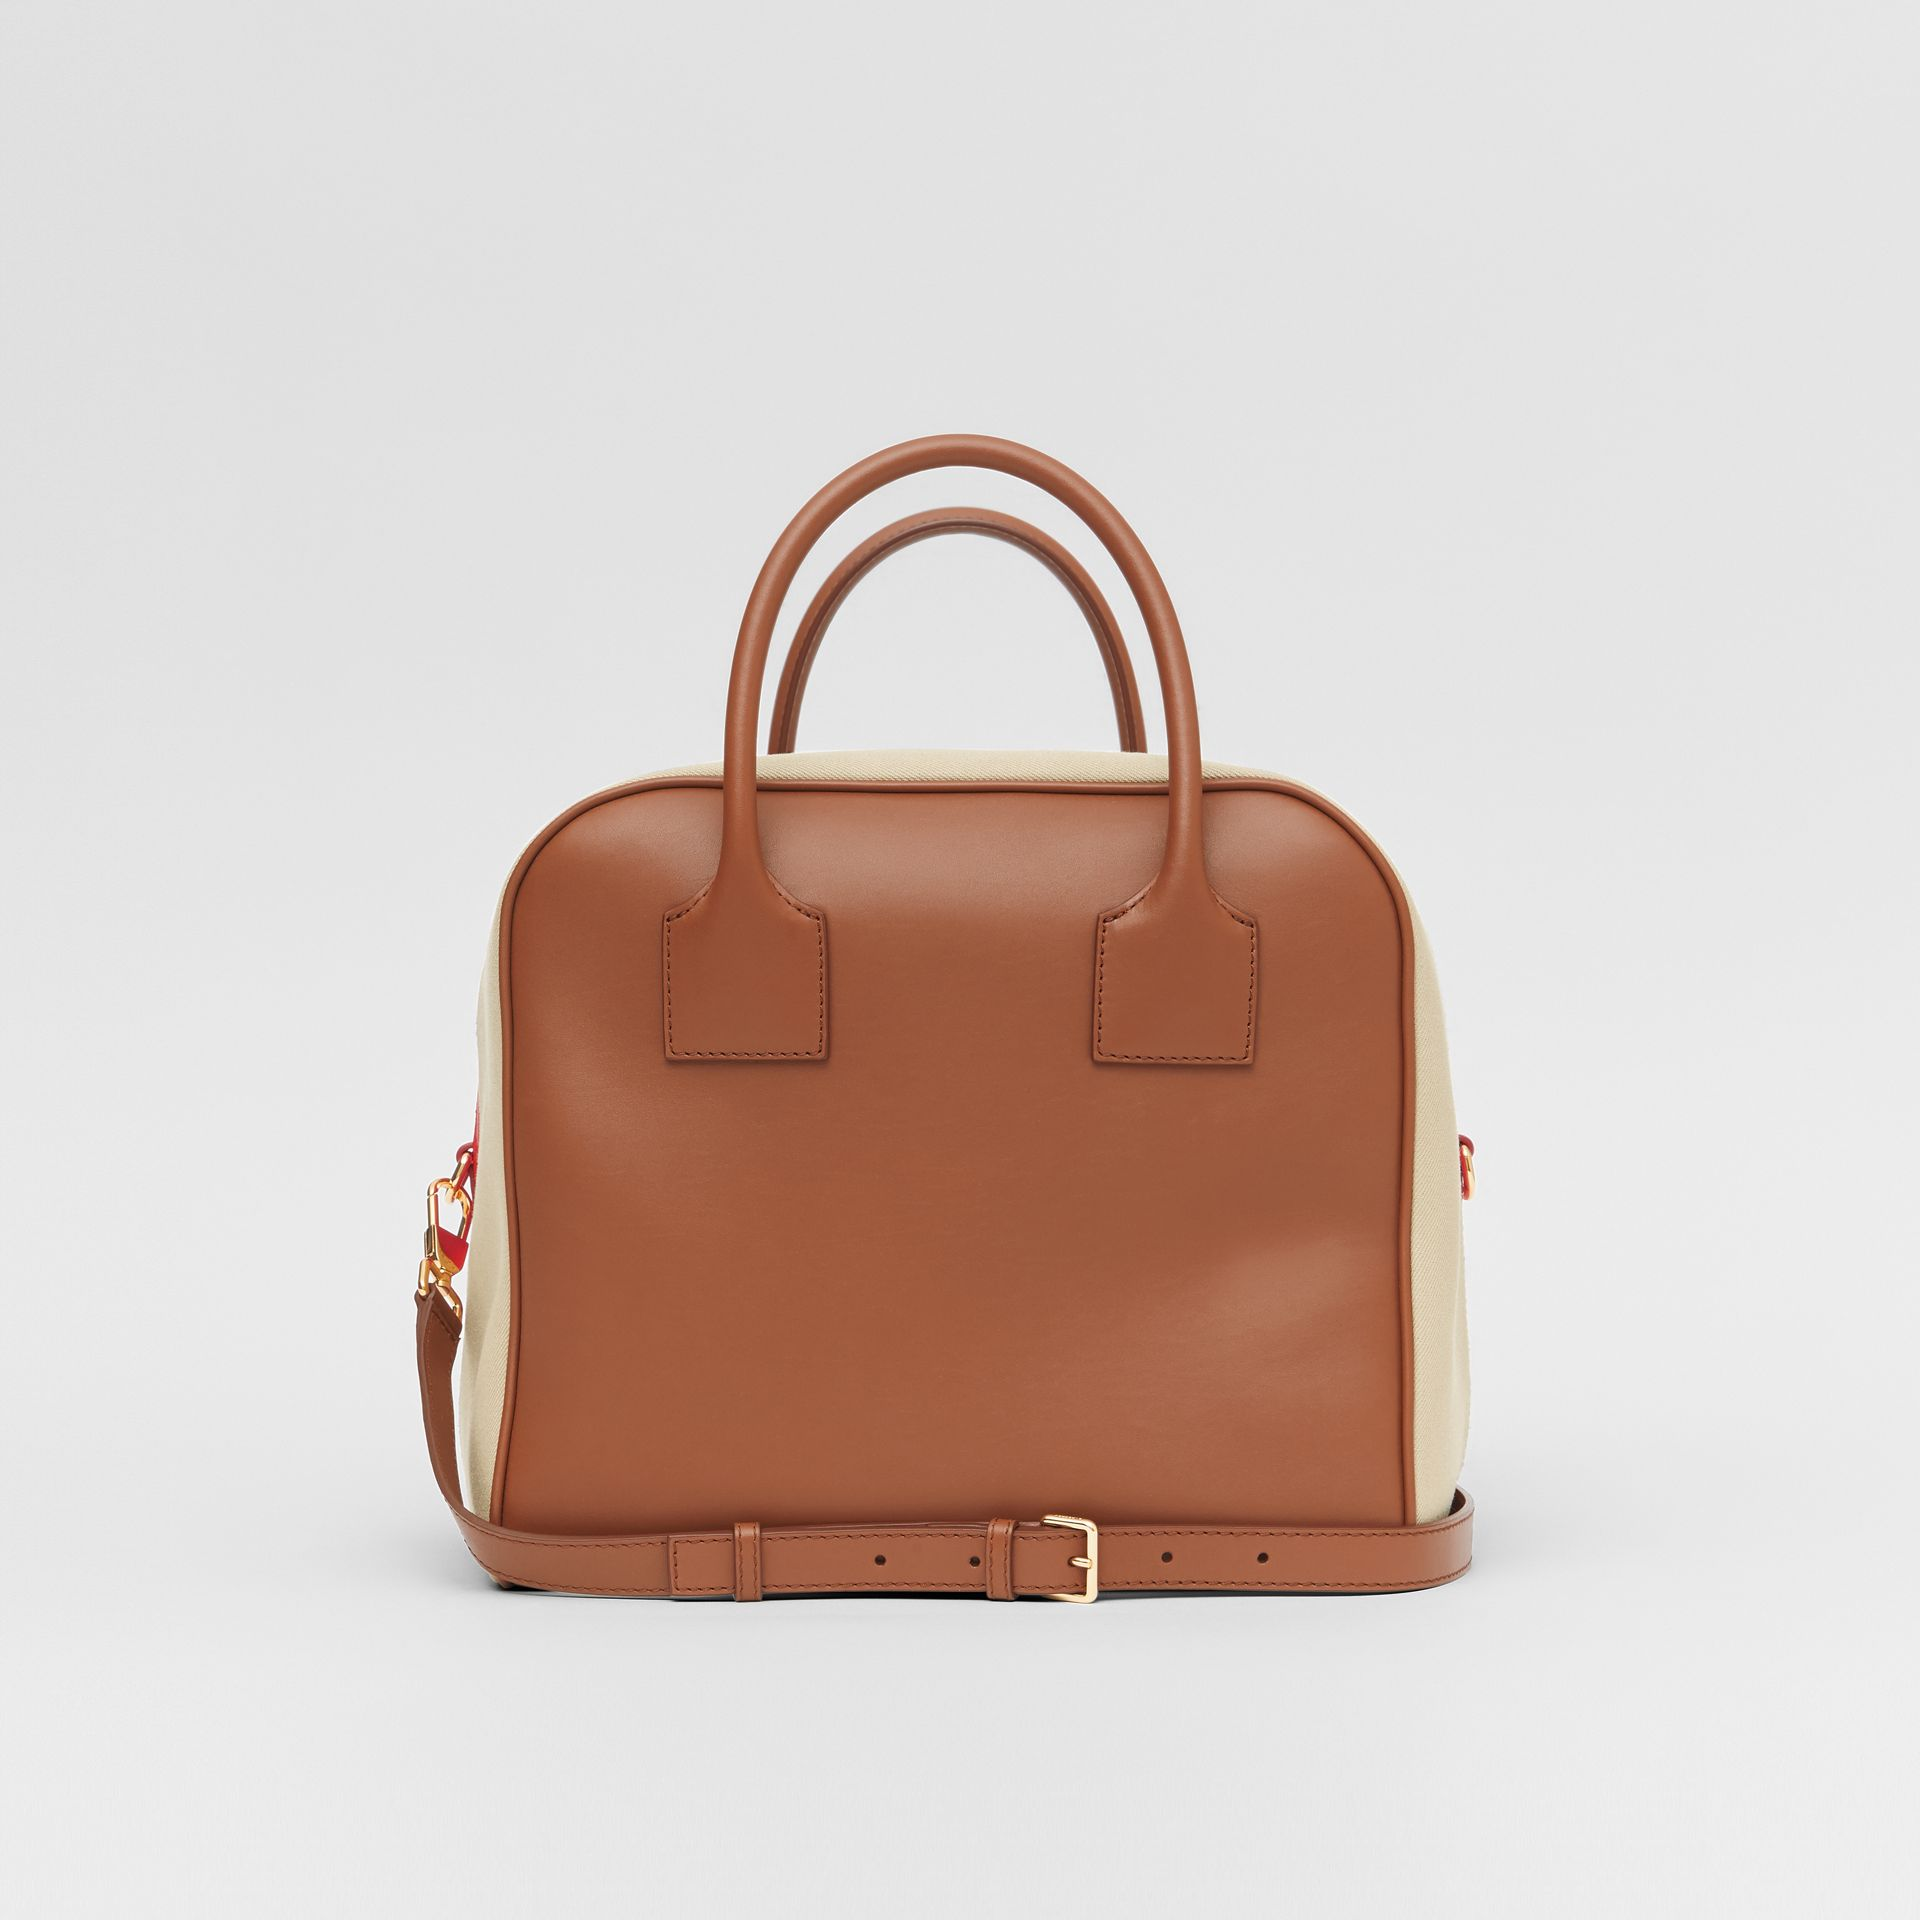 Medium Leather and Cotton Canvas Cube Bag in Malt Brown - Women | Burberry Australia - gallery image 6